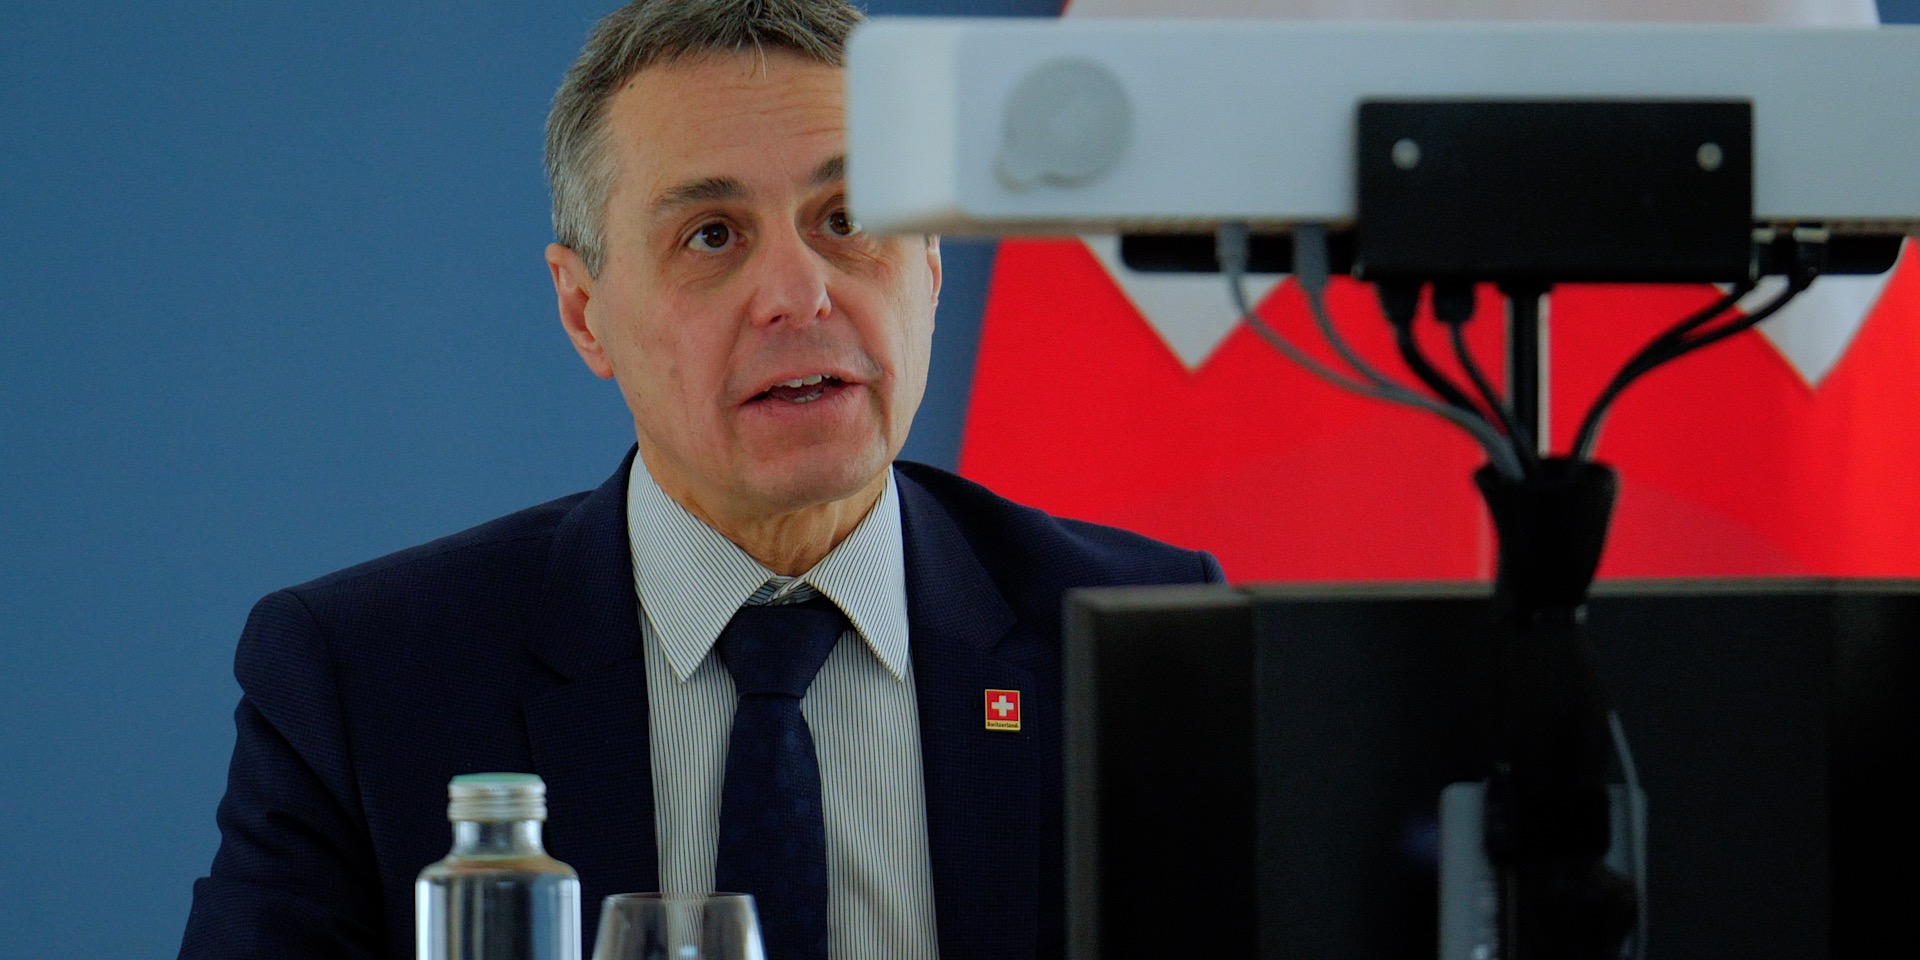 Federal Councillor Ignazio Cassis gives a speech in front of a camera during a virtual conference. Behind him, the Swiss flag.